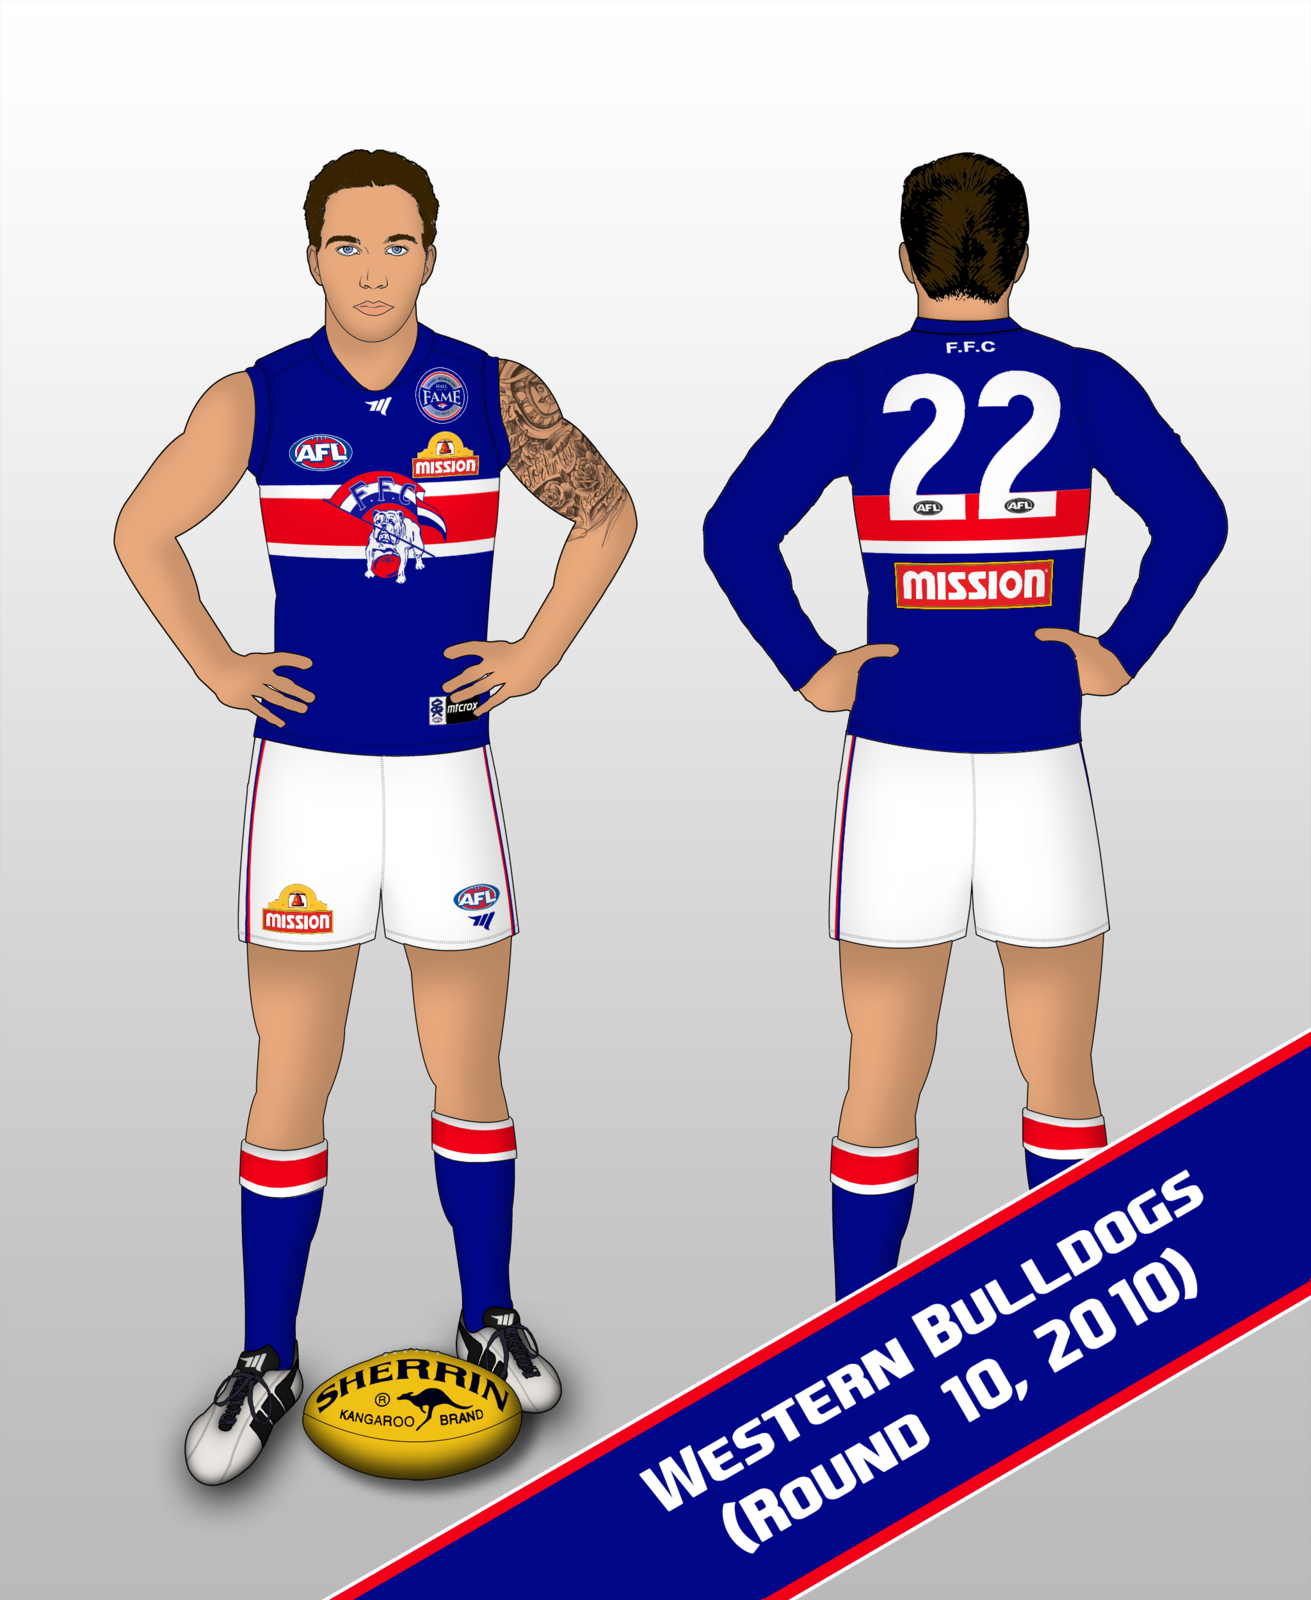 Western Bulldogs - Round 10 2010.png